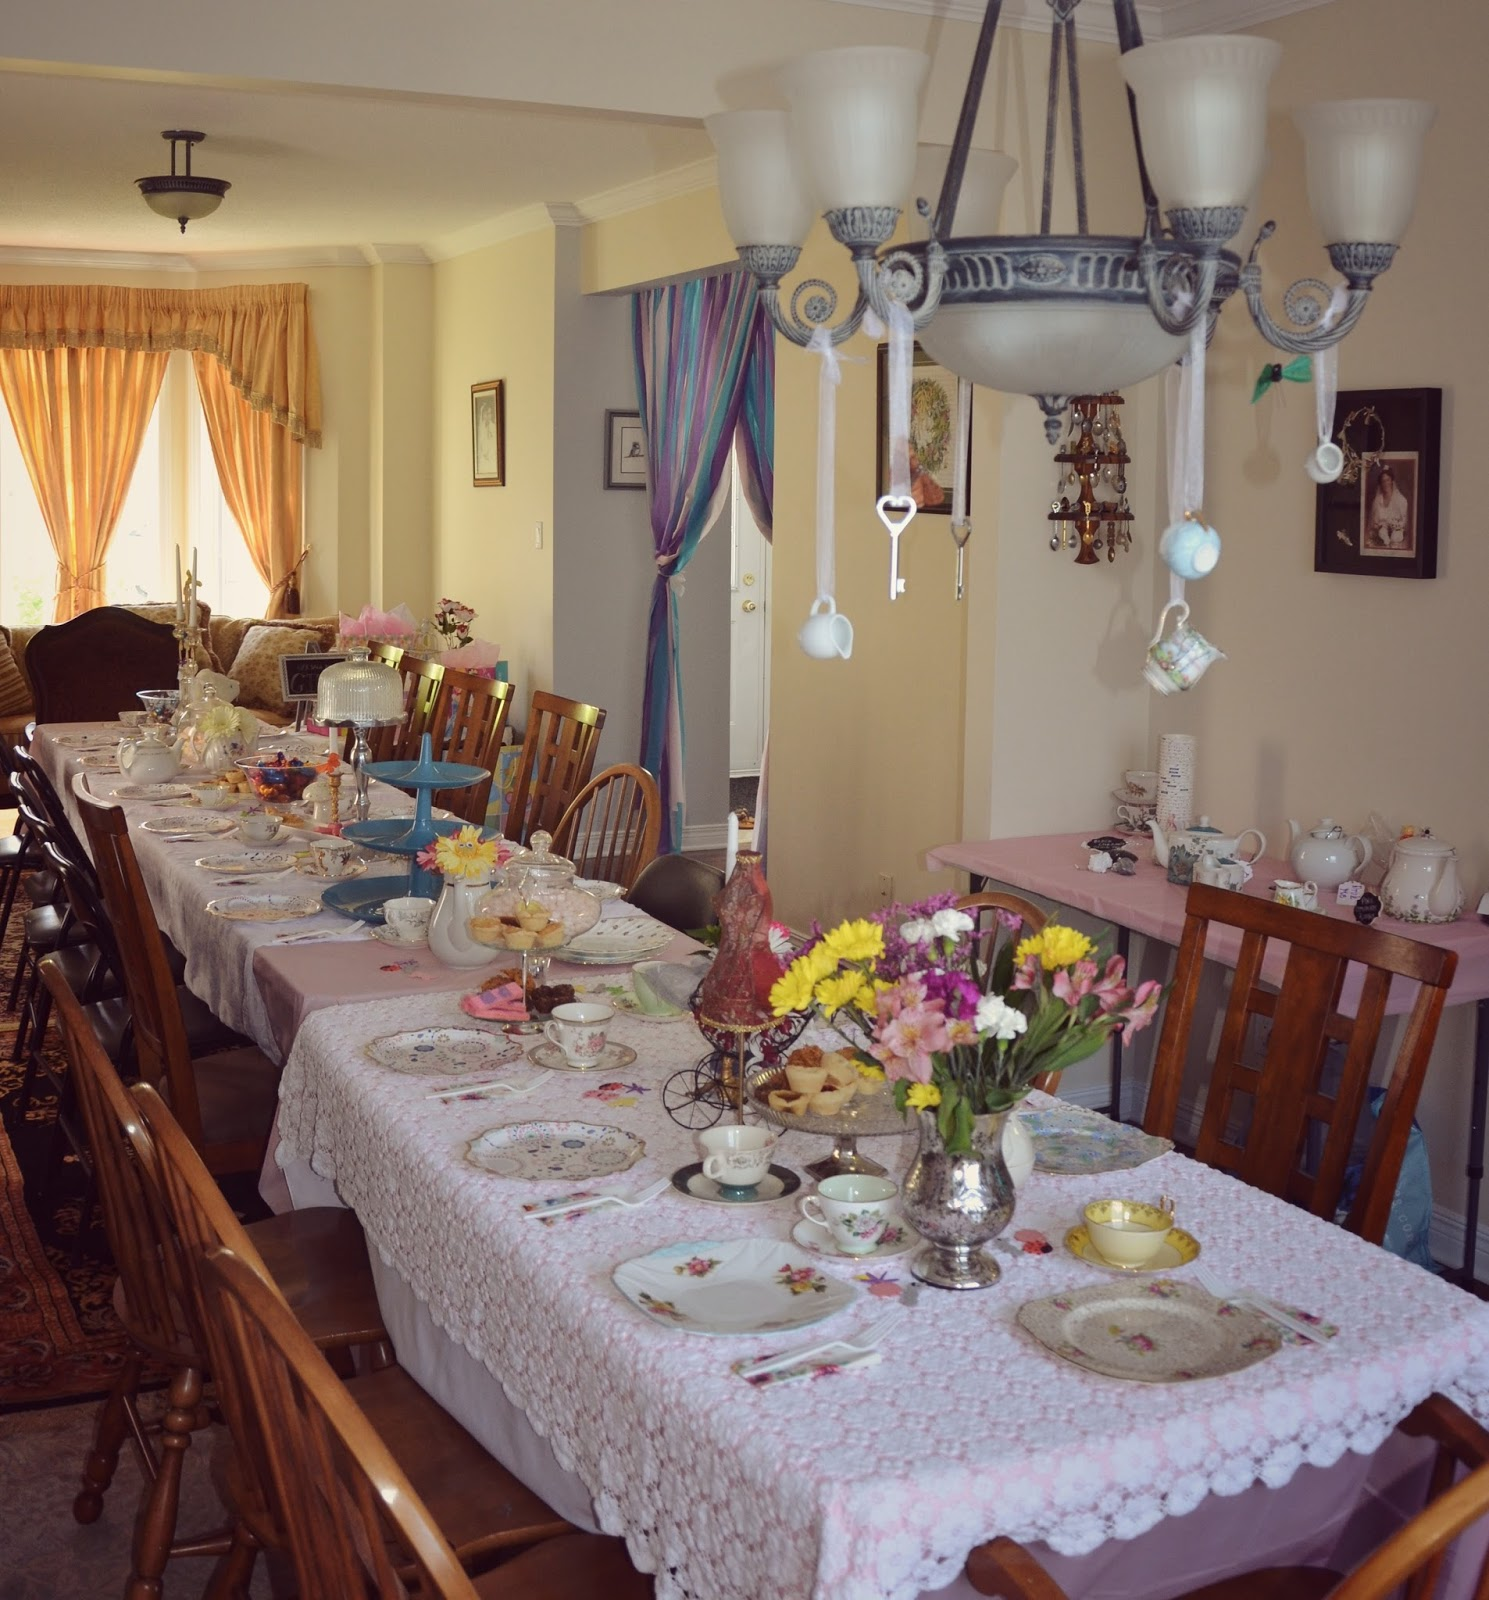 Suburban wallflower alice in wonderland tea party baby shower to the alice in wonderland franchise some of my favourite details include the tea cups hanging from the chandelier and googly eyes on the flowers arubaitofo Choice Image